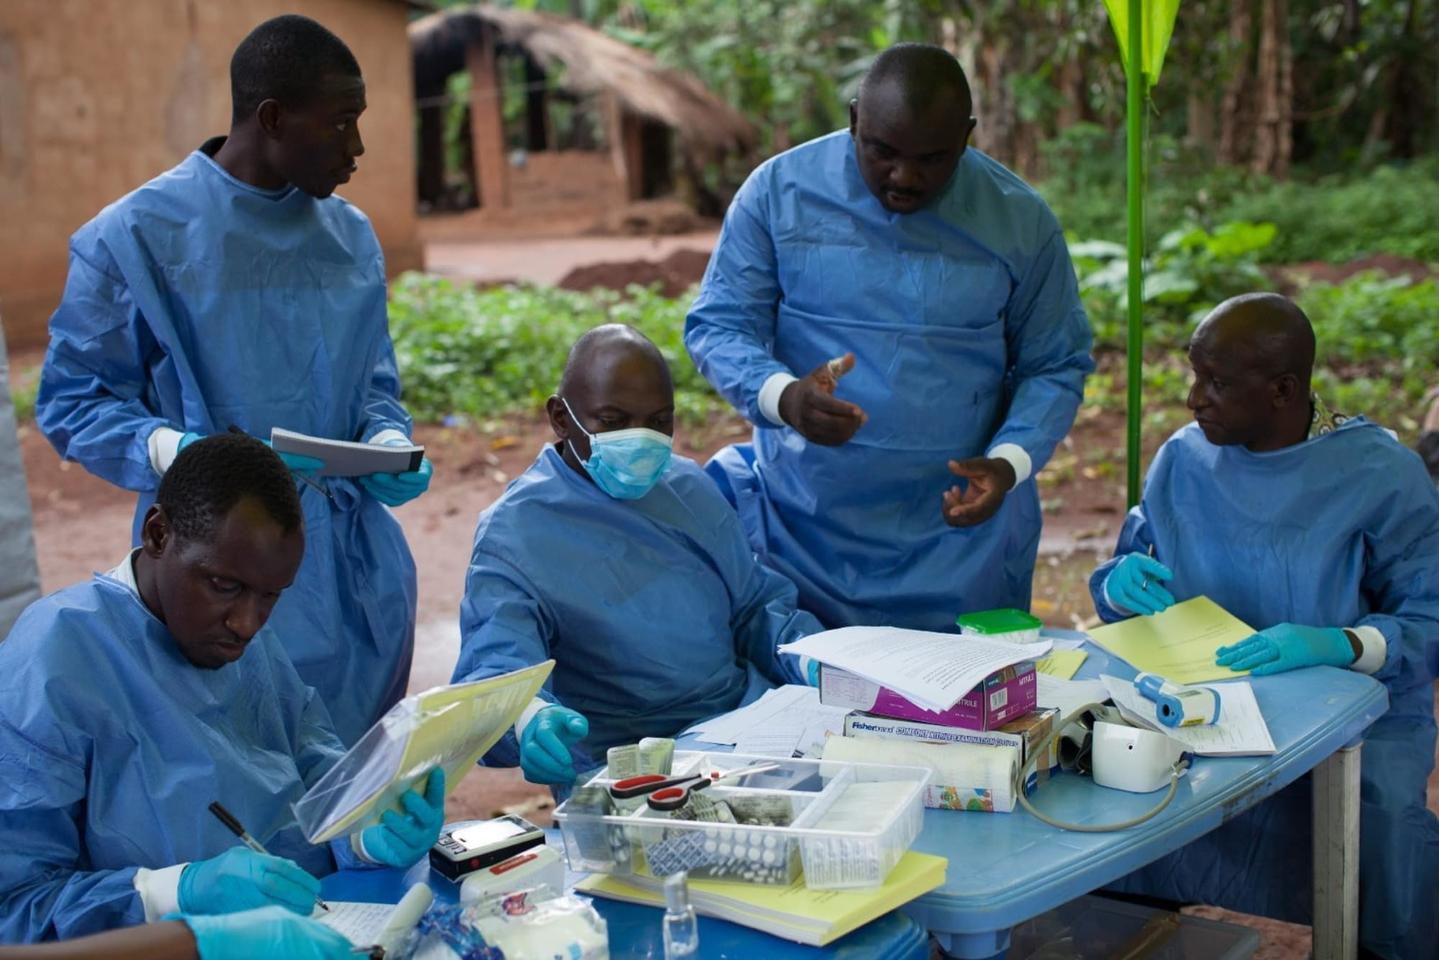 Workers carrying out the WHO Ebola vaccine trial in Katongourou, Guinea